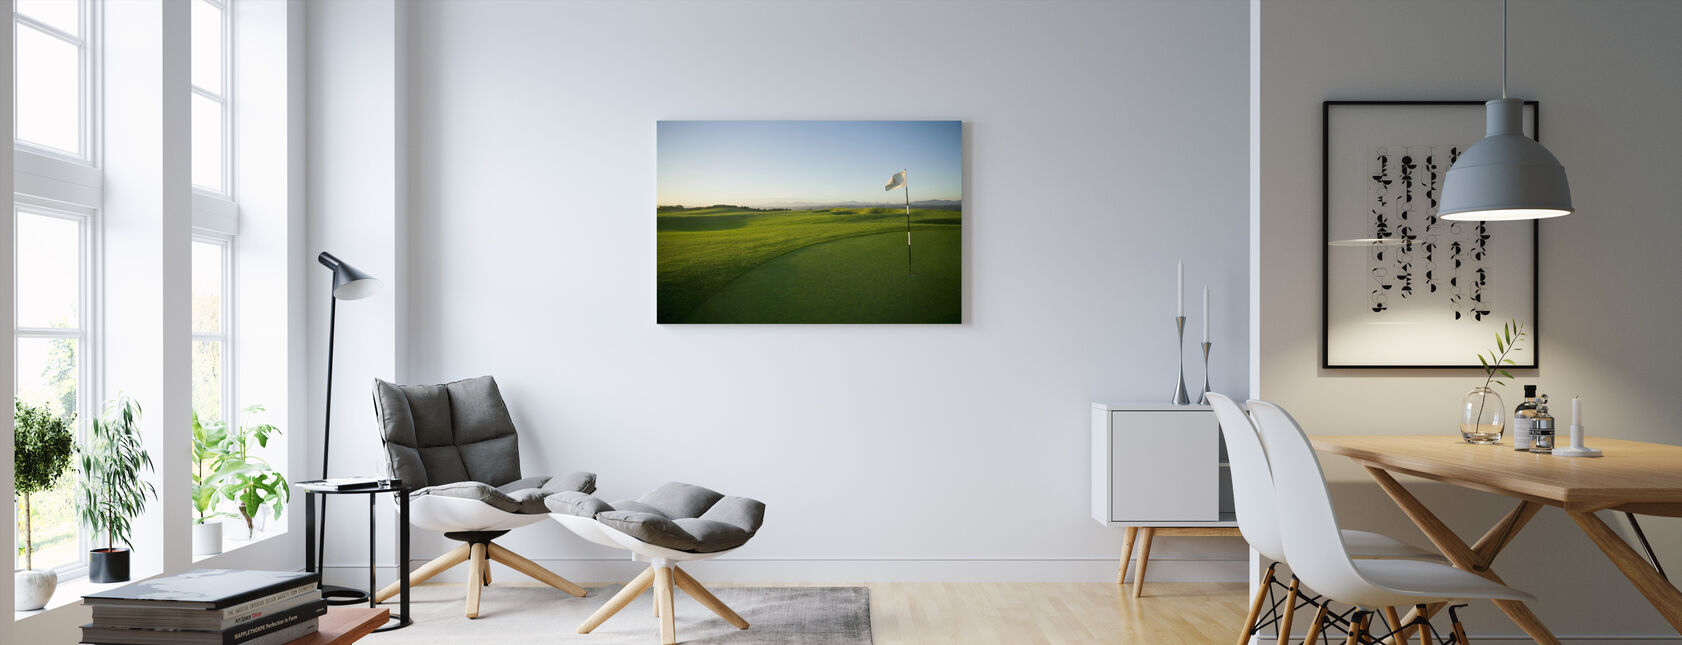 South African Golf Course - Canvas print - Living Room